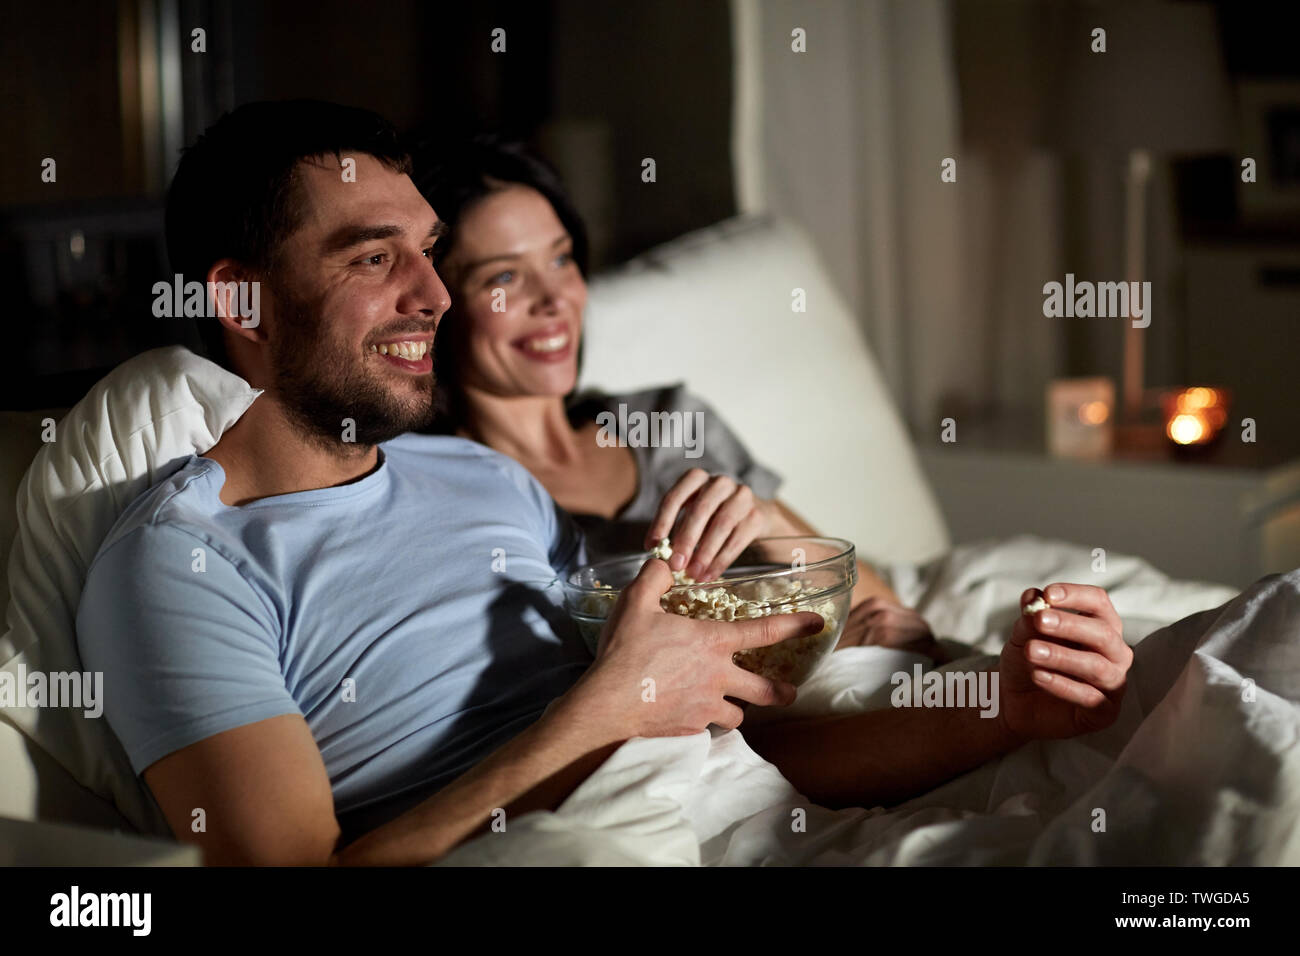 couple with popcorn watching tv at night at home - Stock Image